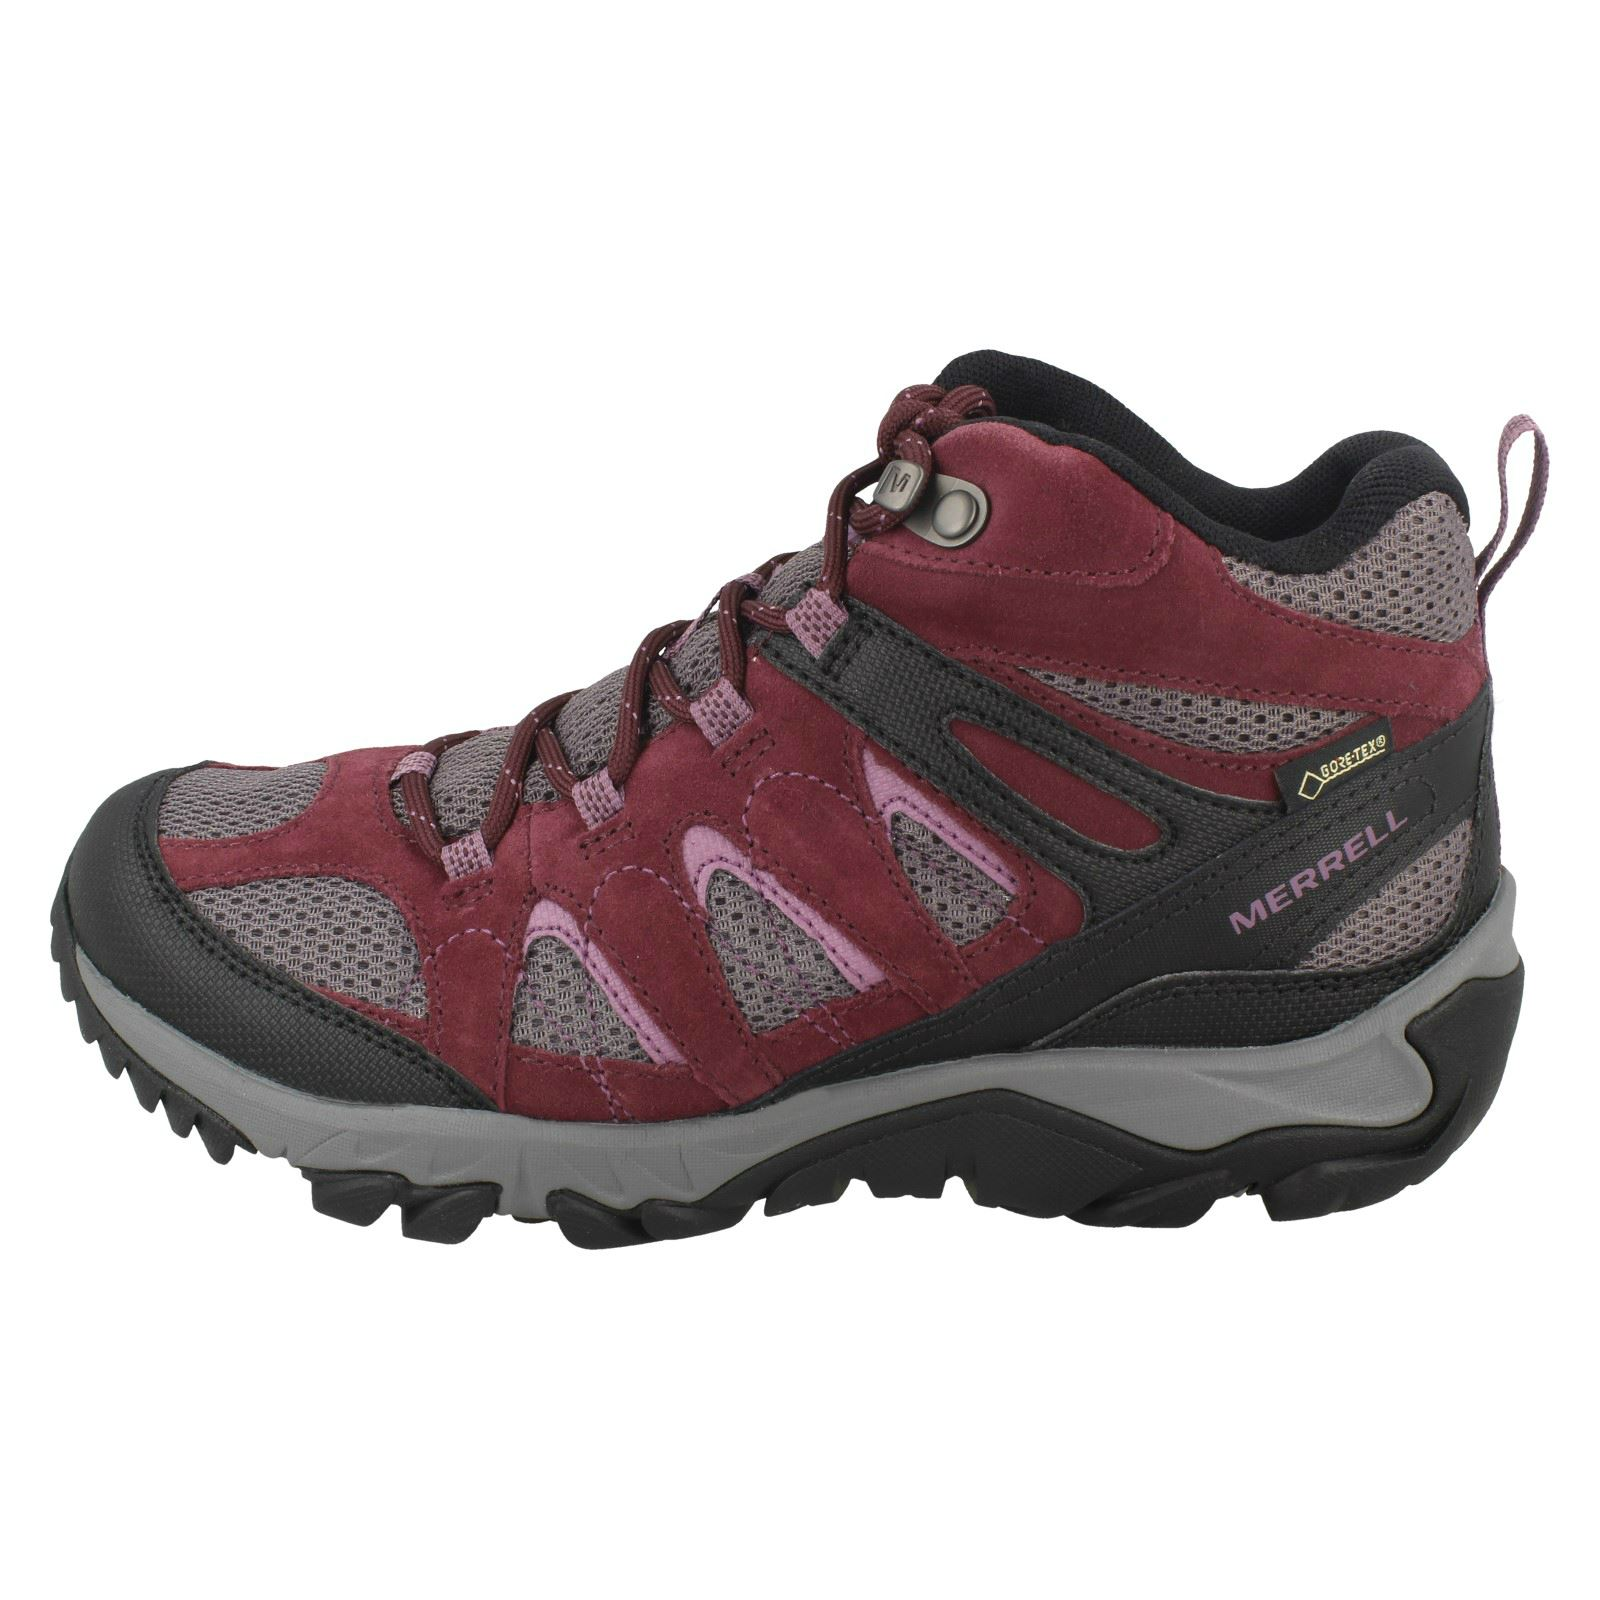 Details about  /Ladies Merrell Ankle Boots Outmost Mid Vent GTX J41070